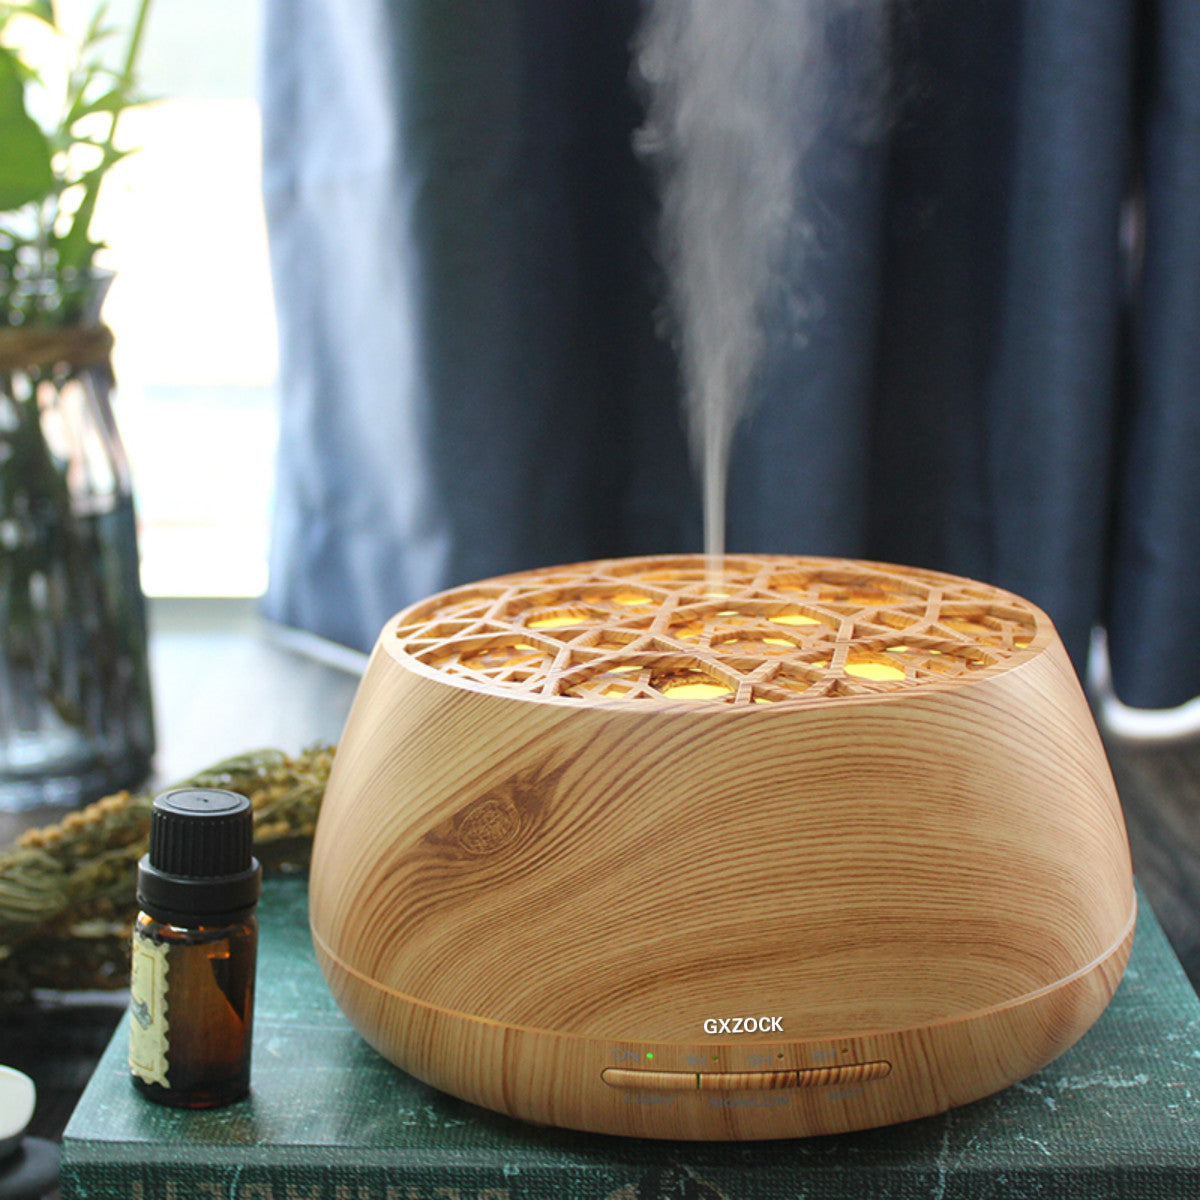 400ml Aromatherapy Essential Oil Diffuser, ultrasonic aroma essential oil diffuserCool Mist Humidifier with Wood Grain Design for Office, Room, Spa